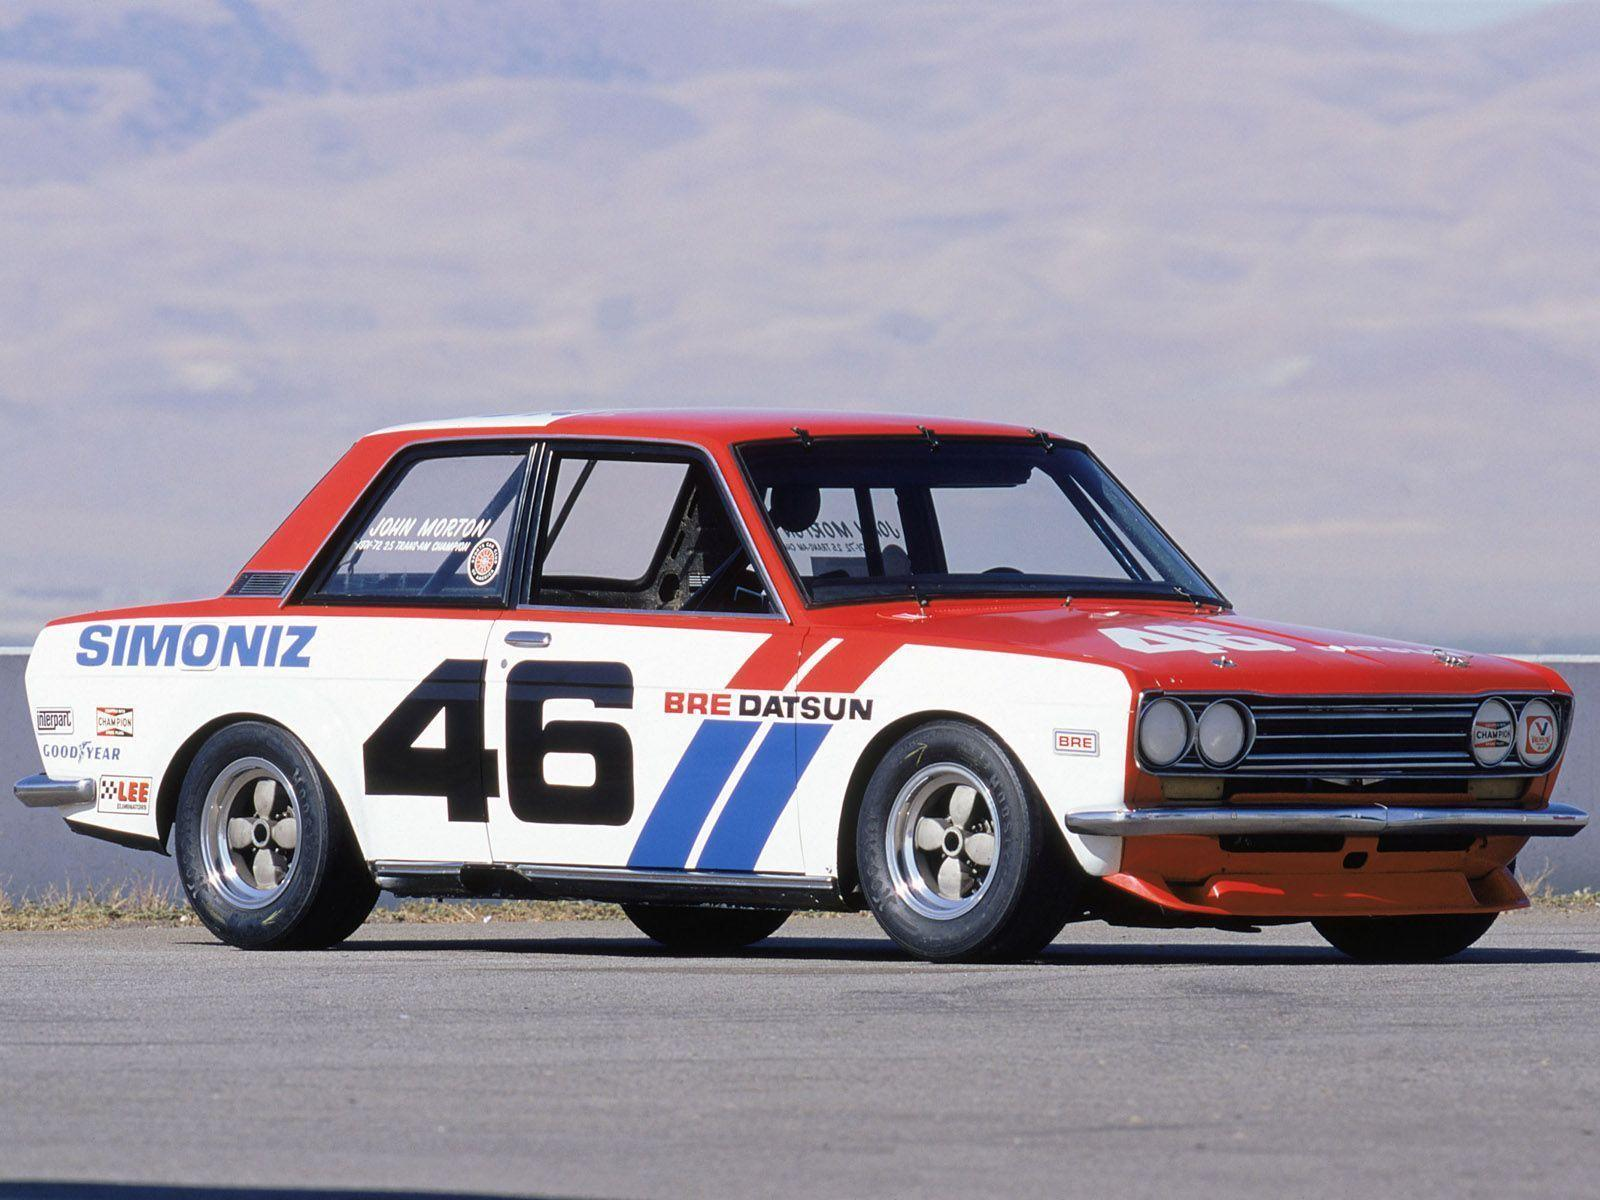 Datsun 510 Wallpapers 1600x1200